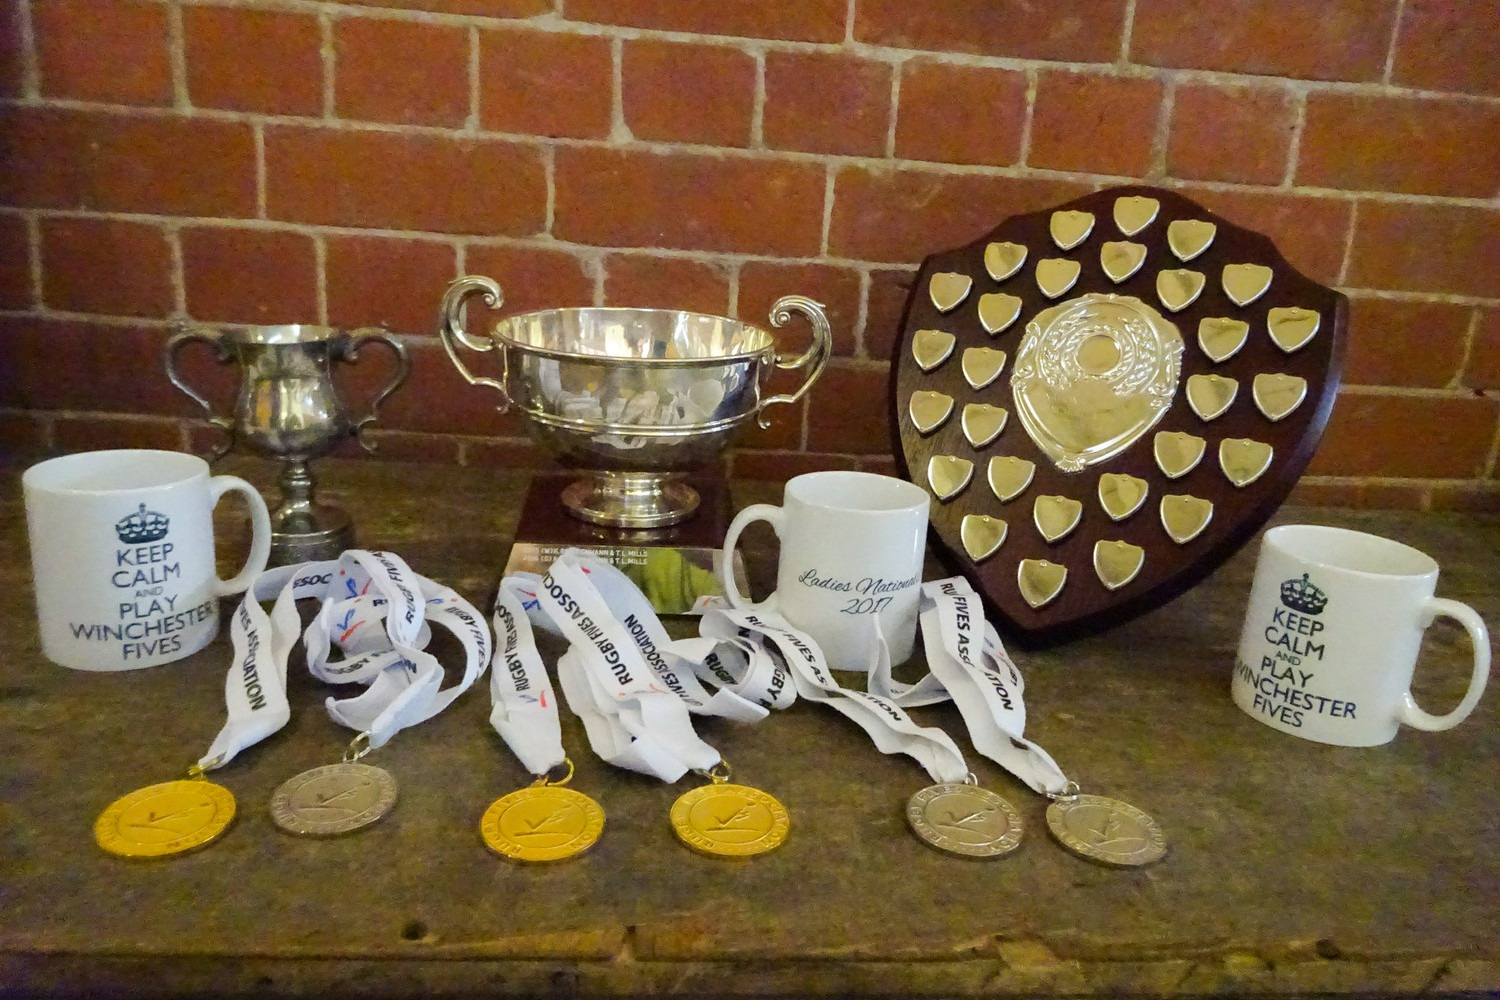 Mugs, medals and trophies